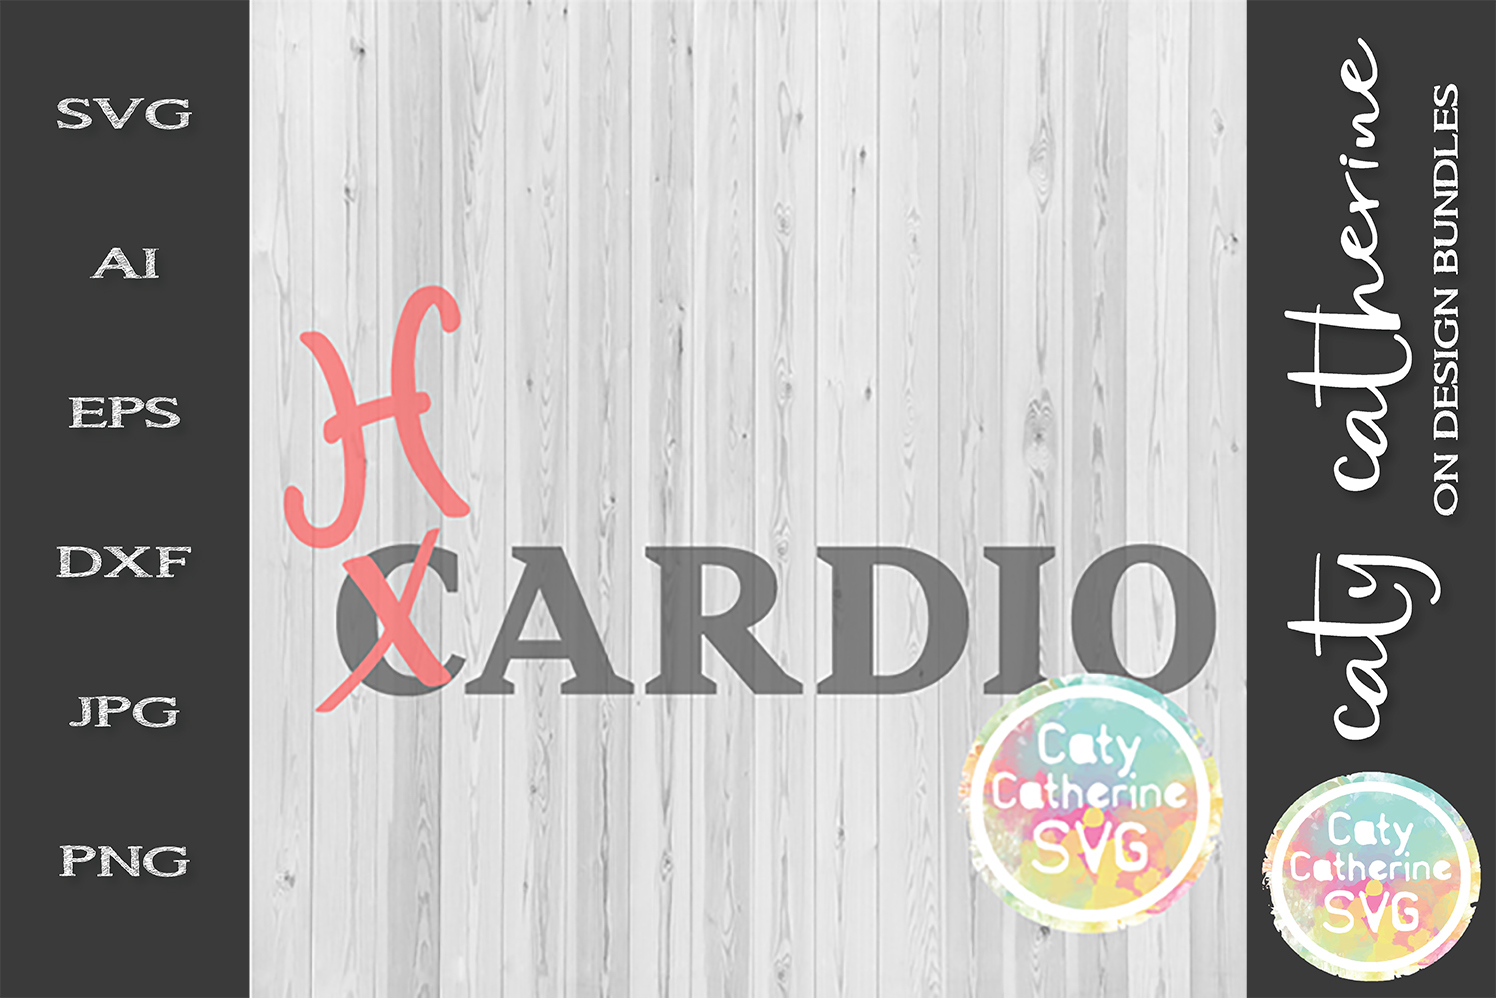 Cardio Hardio SVG Workout Fitness Gym Funny Tee Design example image 1